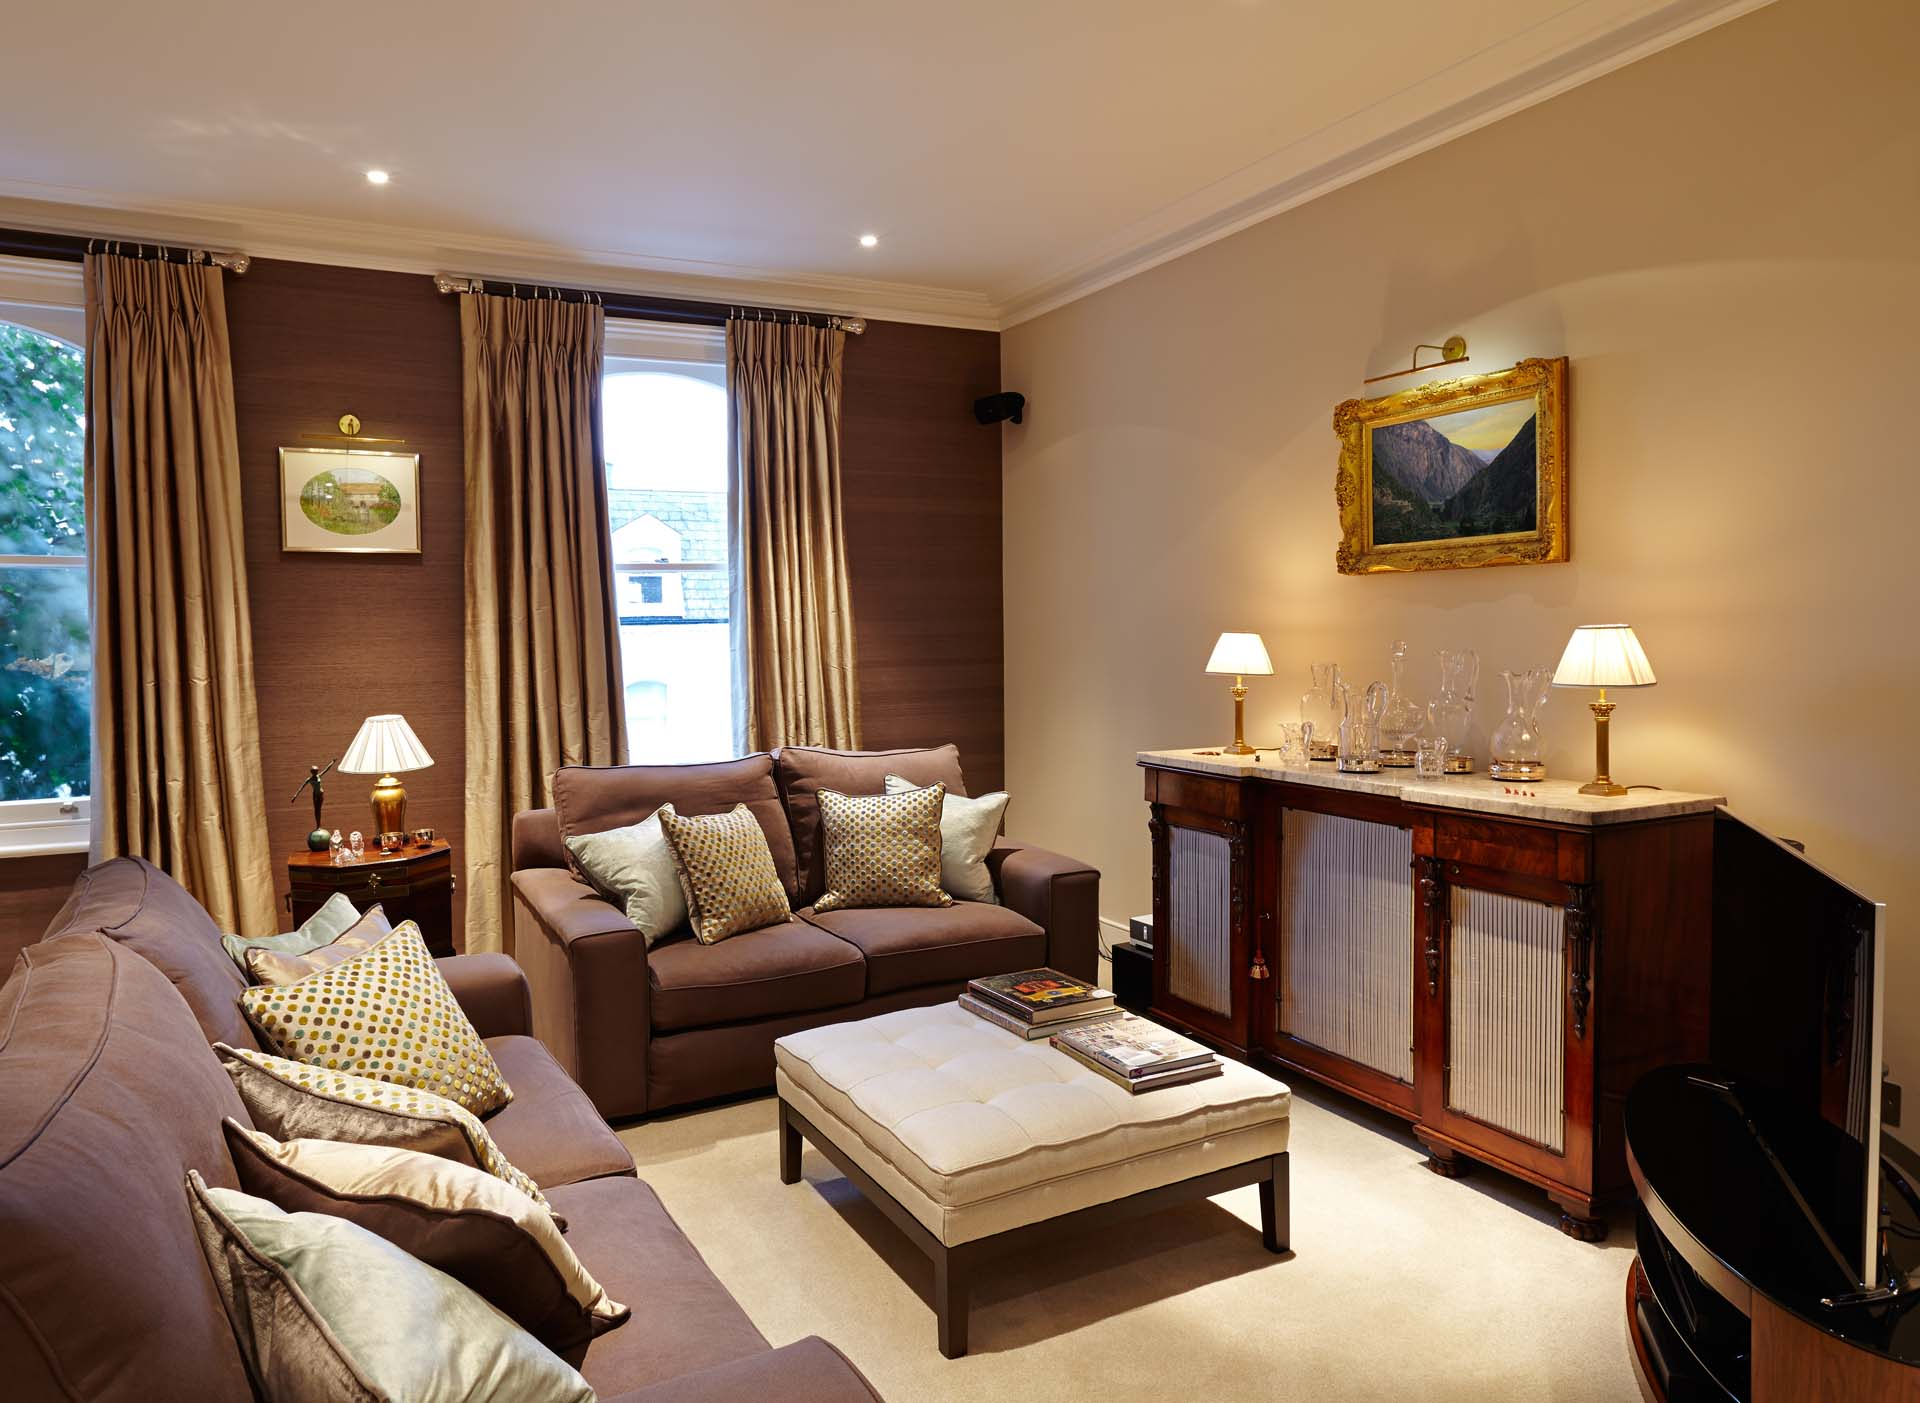 Residential Interior Design | Interior Designer, London, Hampshire ...